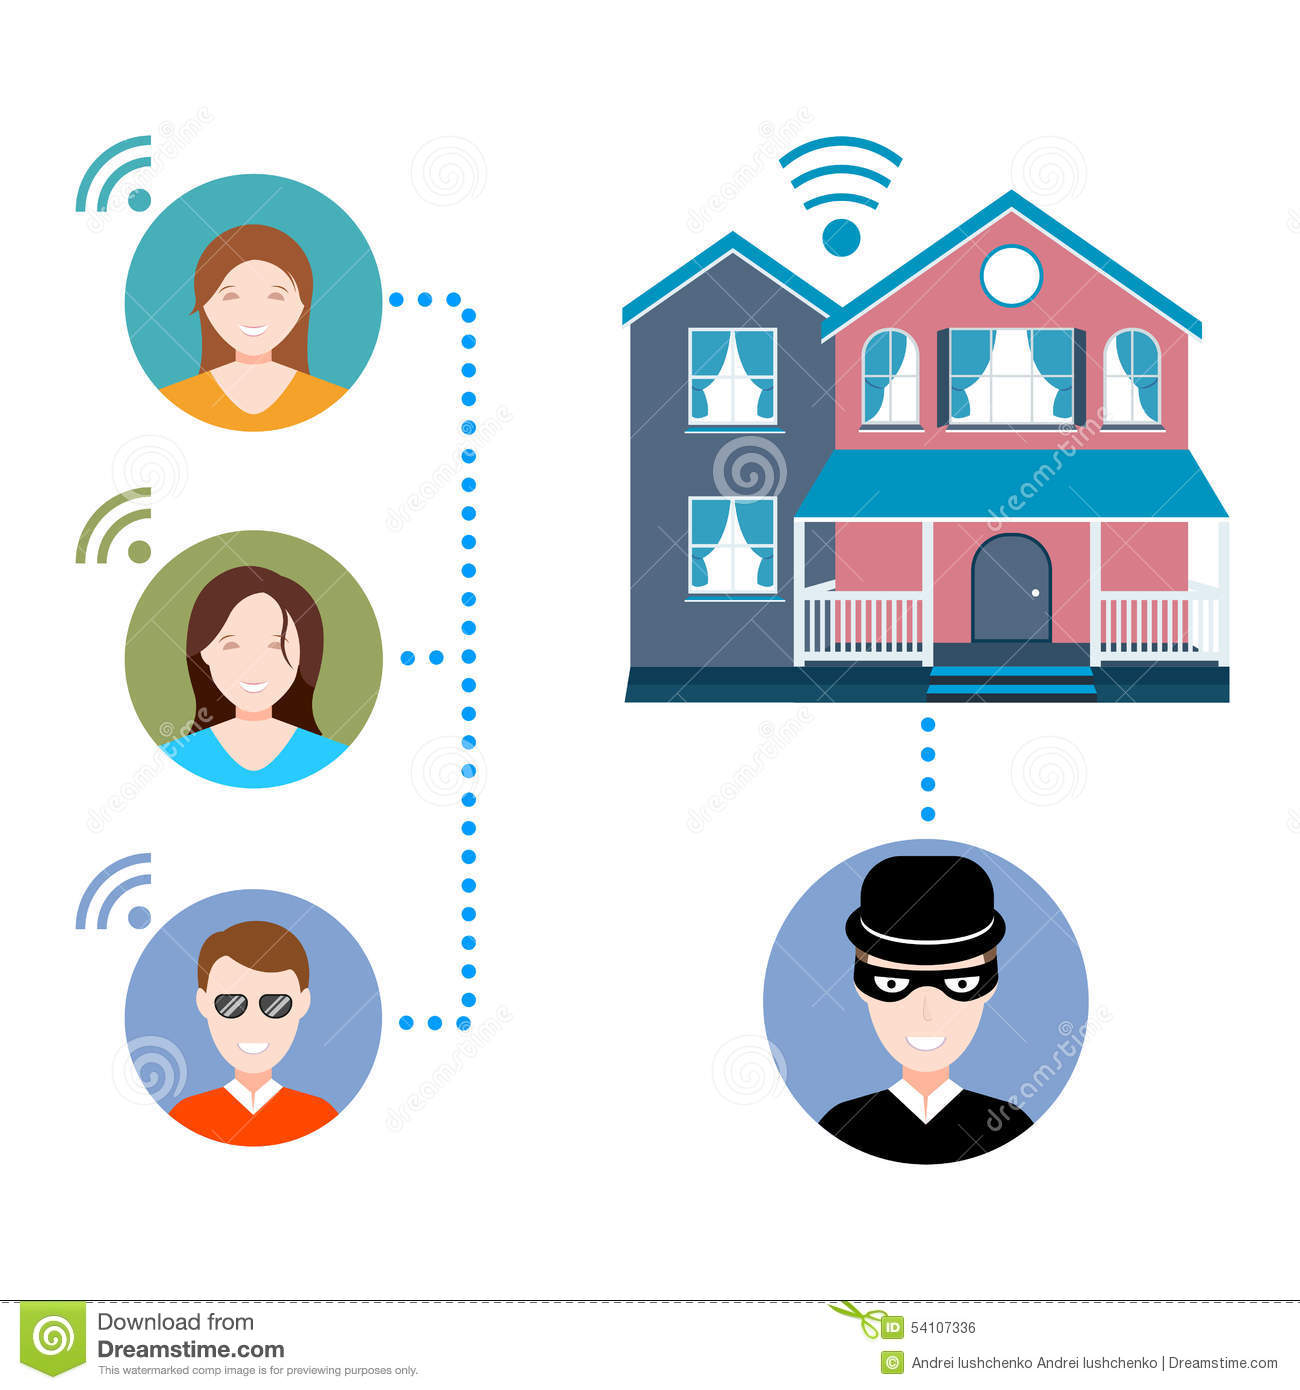 remote control clip art with Stock Illustration Modern Smart Home Security System Vector Illustration White Background Cottage Stock Image54107336 on Stock Illustration Modern Smart Home Security System Vector Illustration White Background Cottage Stock Image54107336 in addition Hamburger Coloring Pages in addition Xbox One Controller Pixel Art 505154041 as well Stock Illustration Boy Remote Car Cartoon Illustration Cute Toy Image45822525 additionally A 52137511.